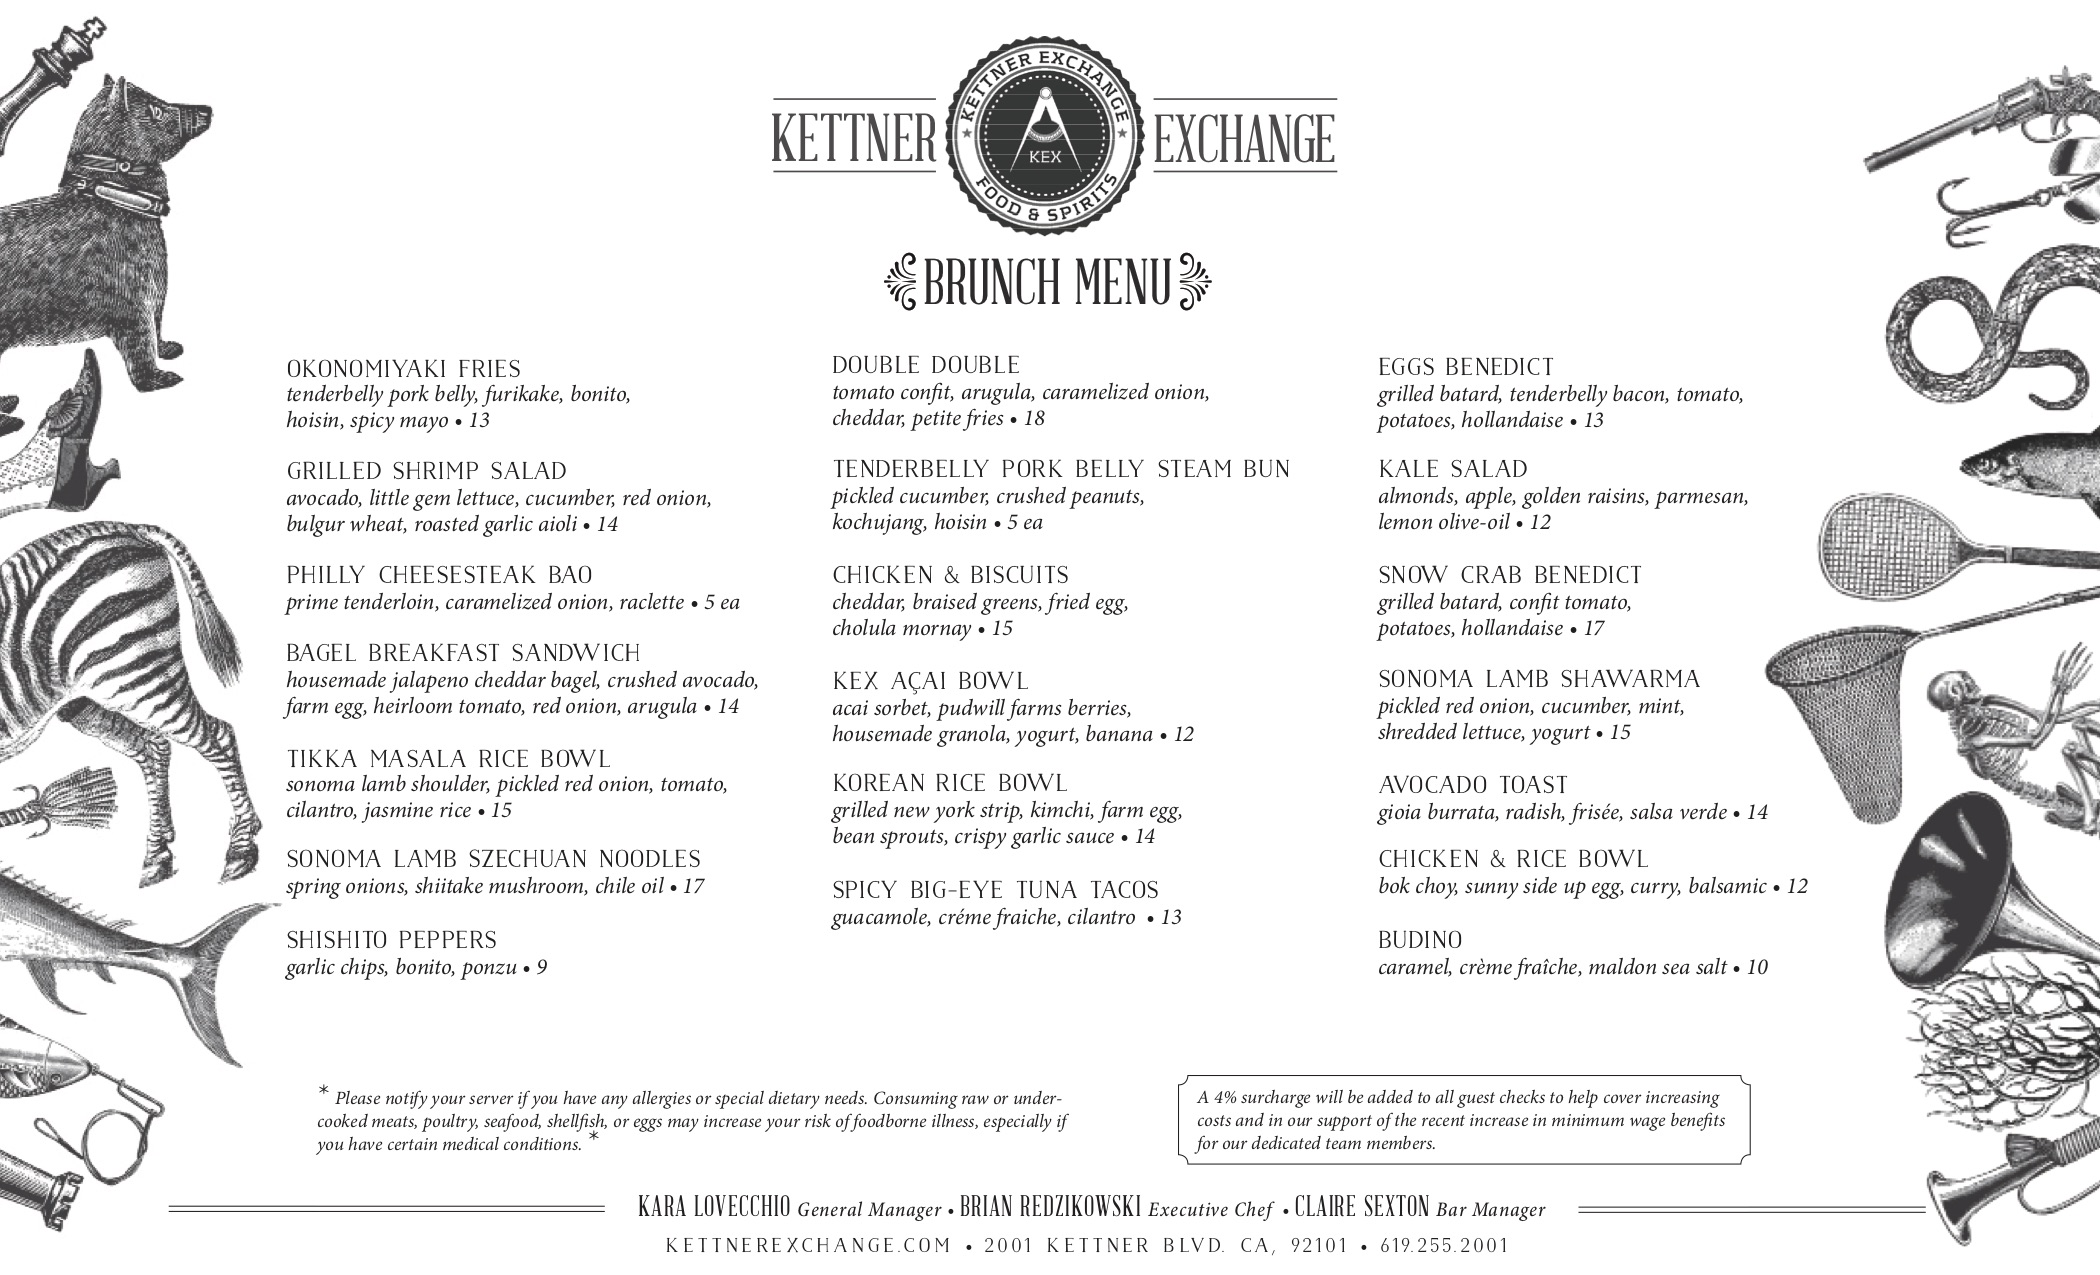 Kettner Exchange Brunch Menu